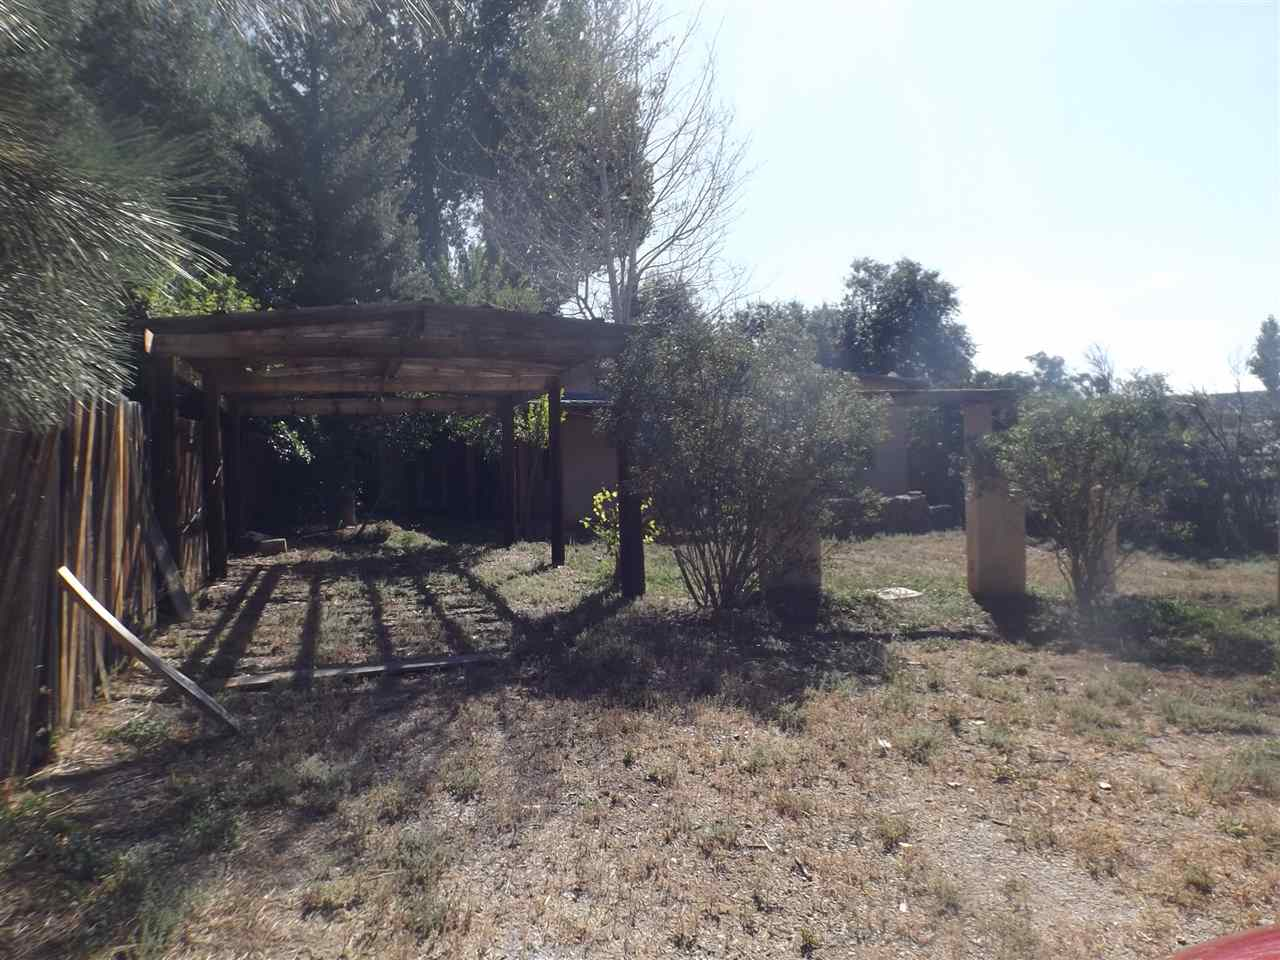 13 Camino de Placita, Arroyo Hondo, NM 87513